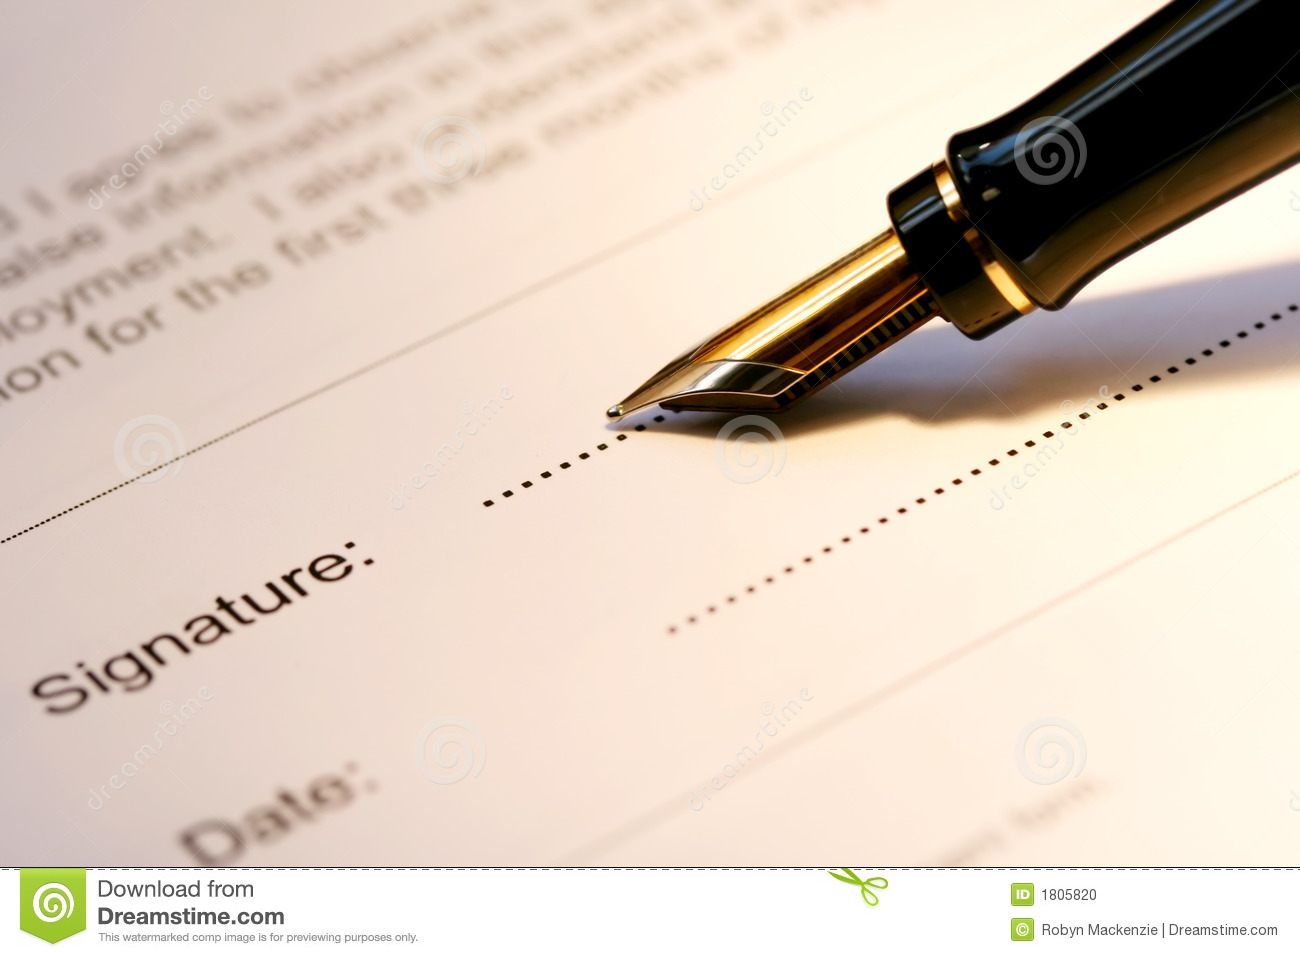 Elements of a contract paper